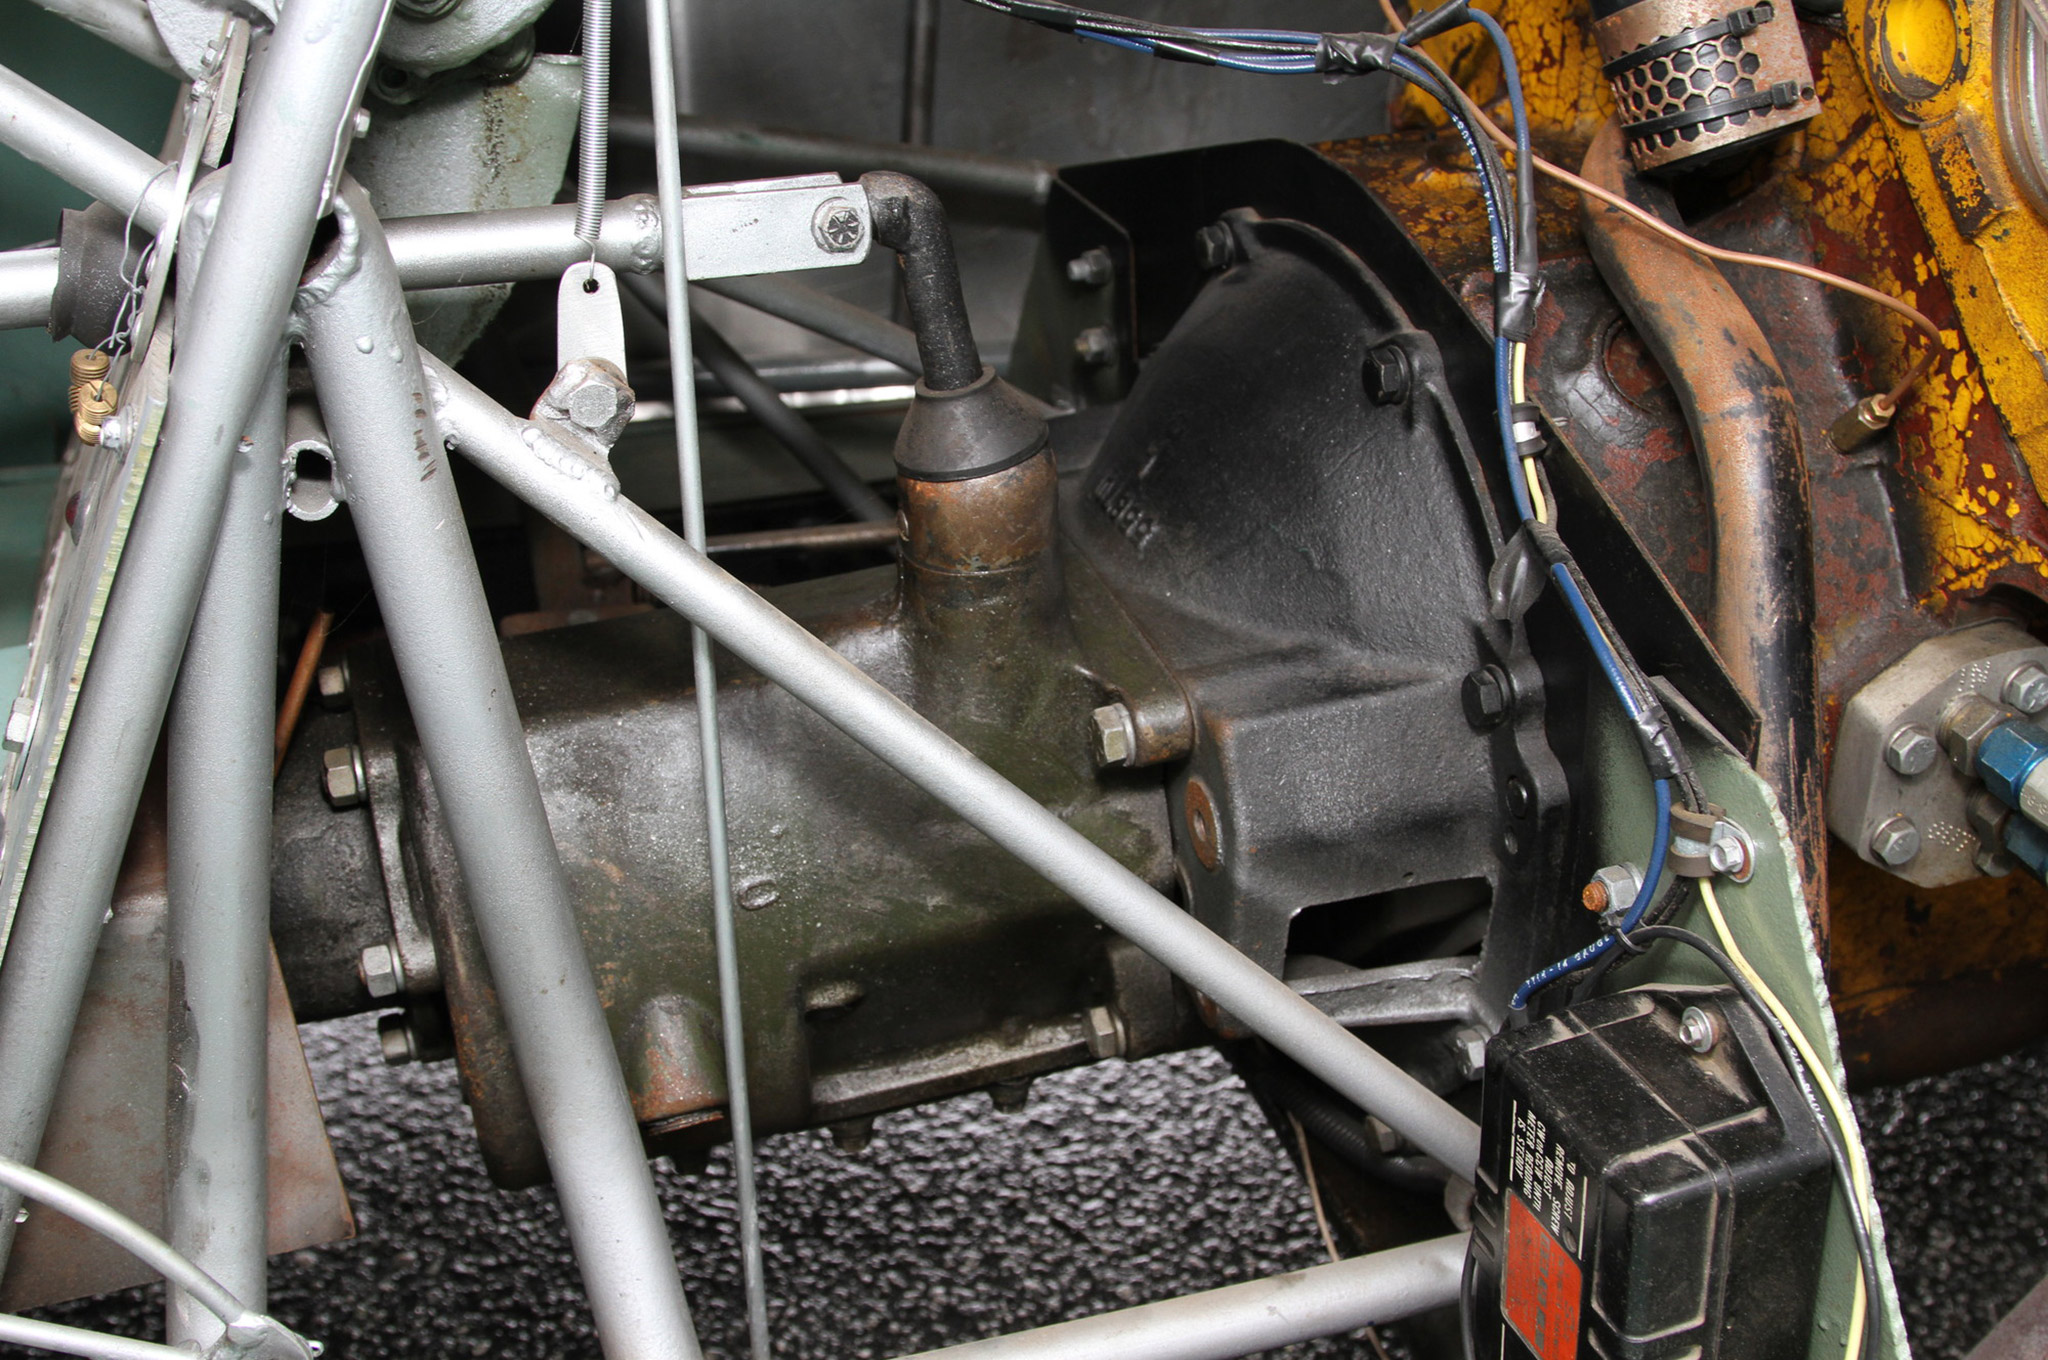 While searching through the parts that Jeanne Canepa's father, Don, had stored, Joe happened upon the original LaSalle transmission that was in the '37 before Glenn switched to the Hydramatic. He cleaned up the LaSalle transmission and added a Reverse gear before putting it back behind the Olds engine.